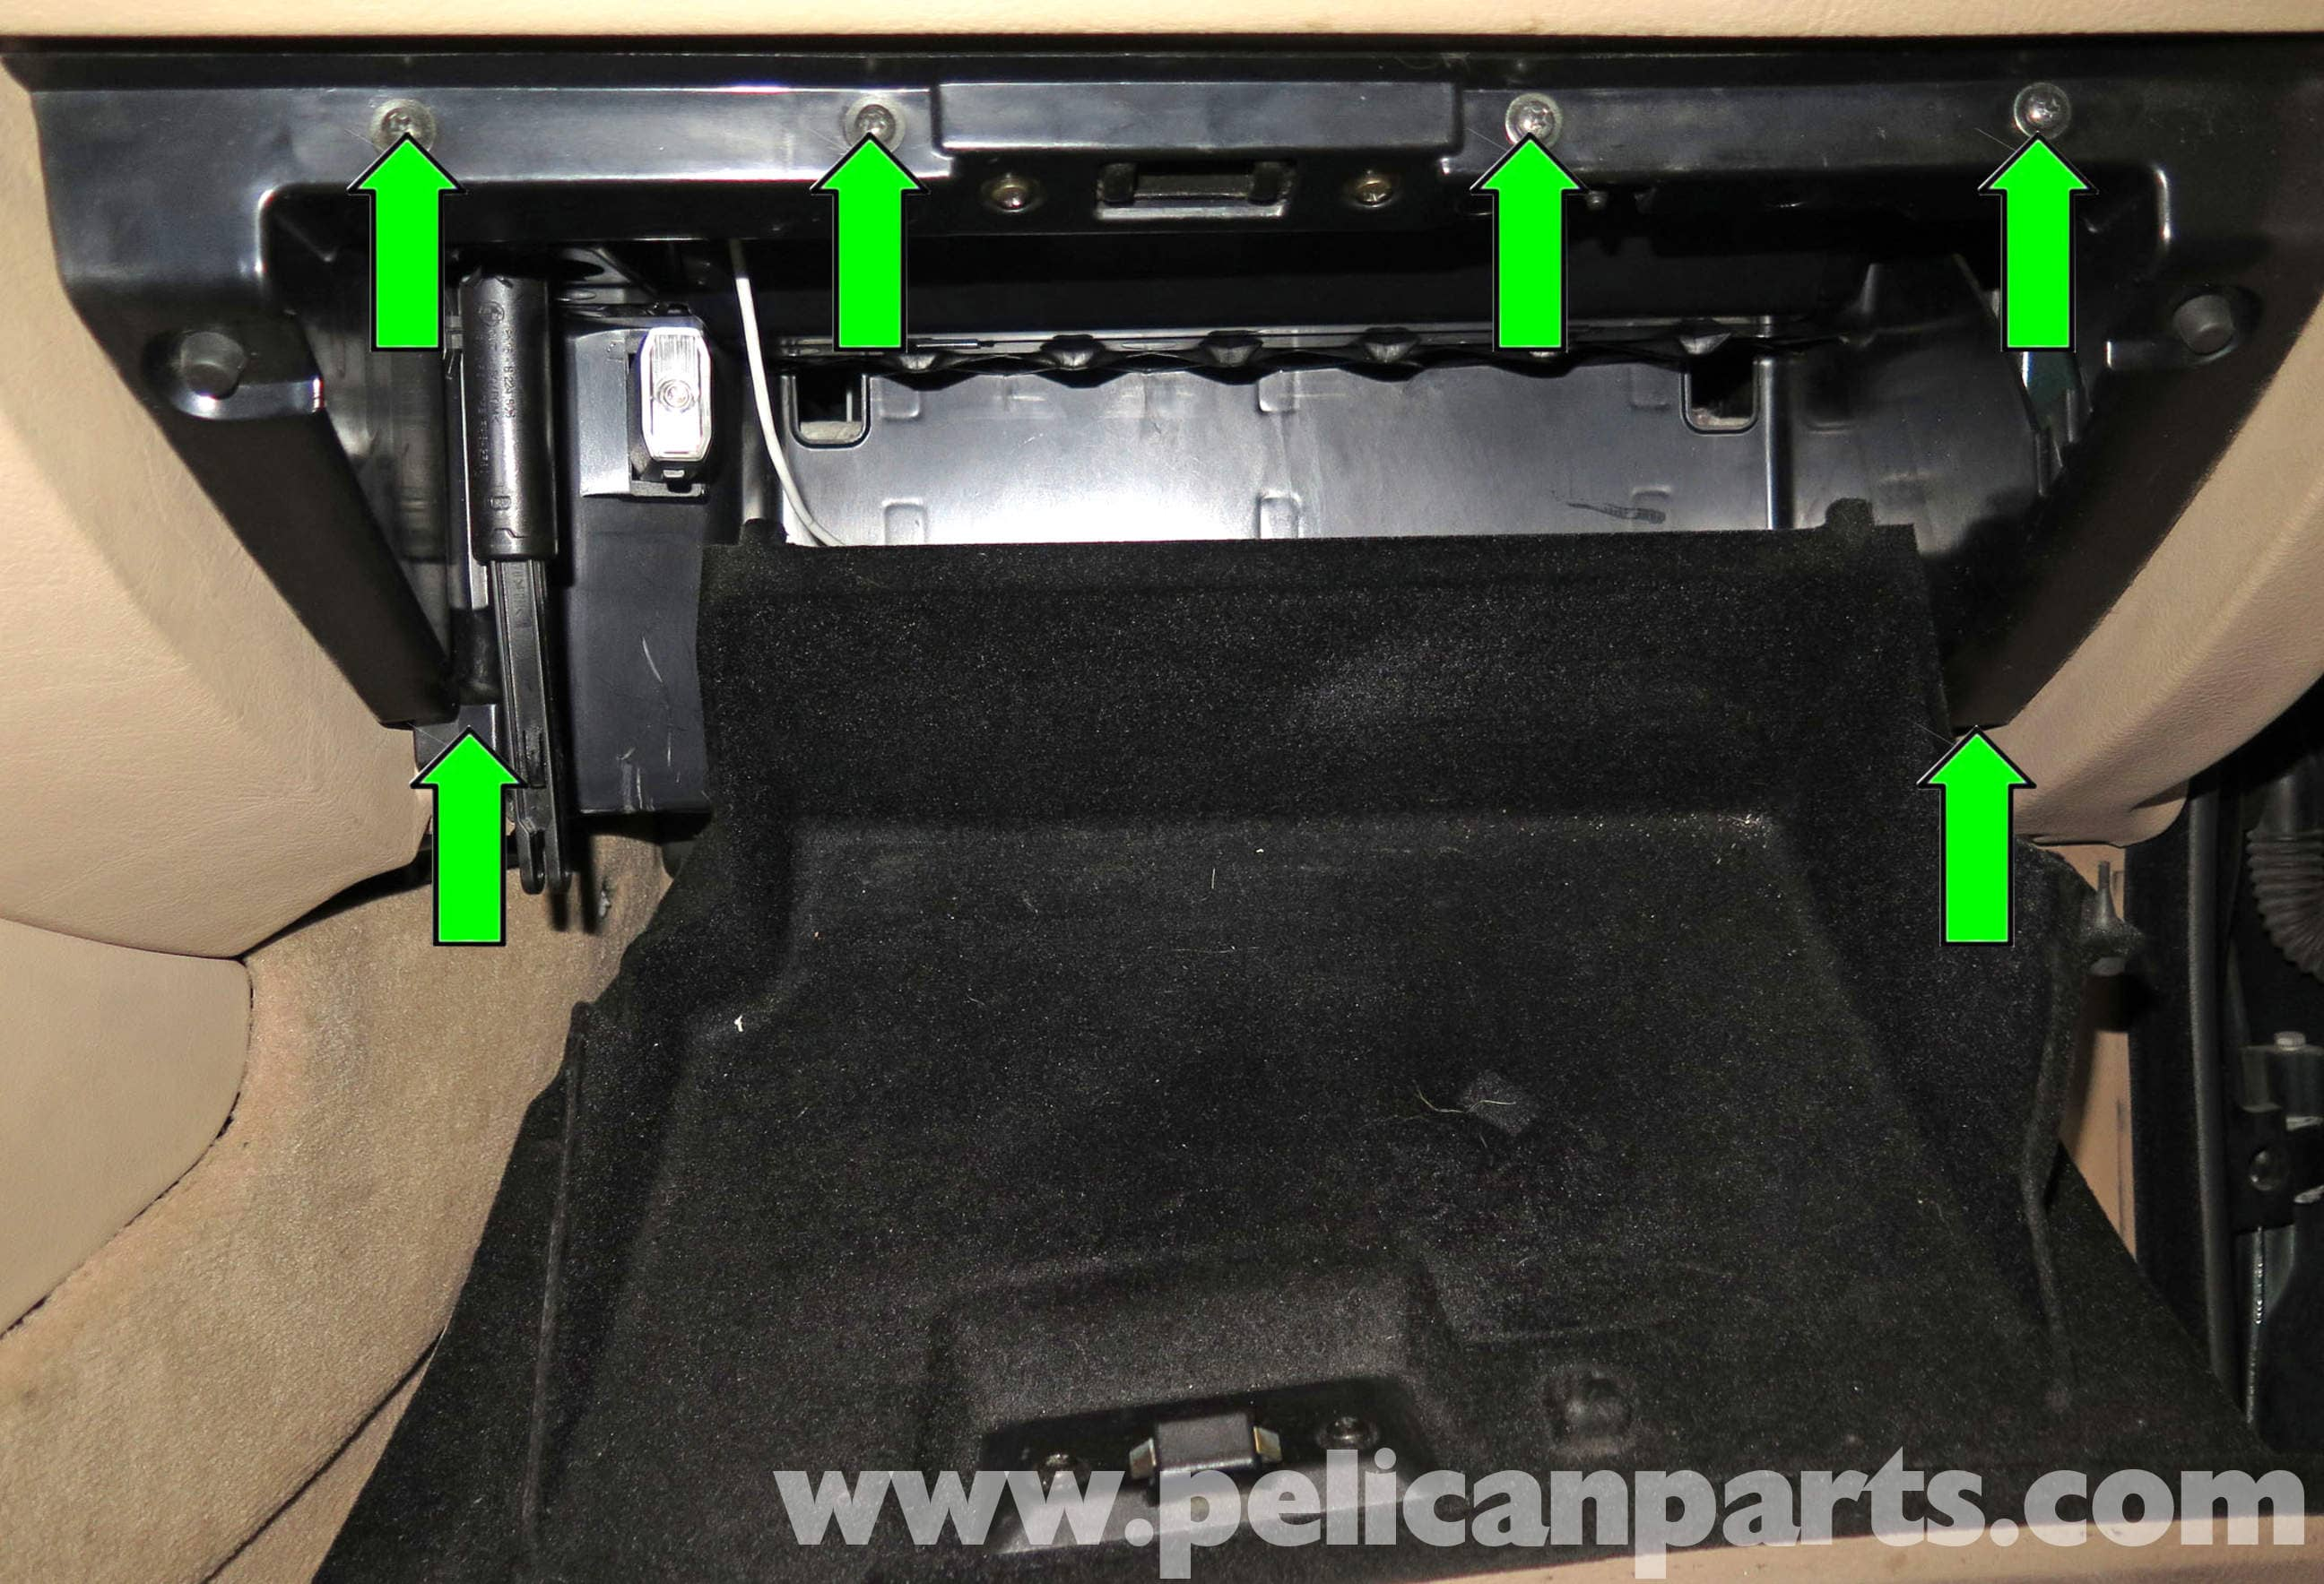 525i Fuse Box Pelican Parts Technical Article Bmw X5 Glove Box Removal